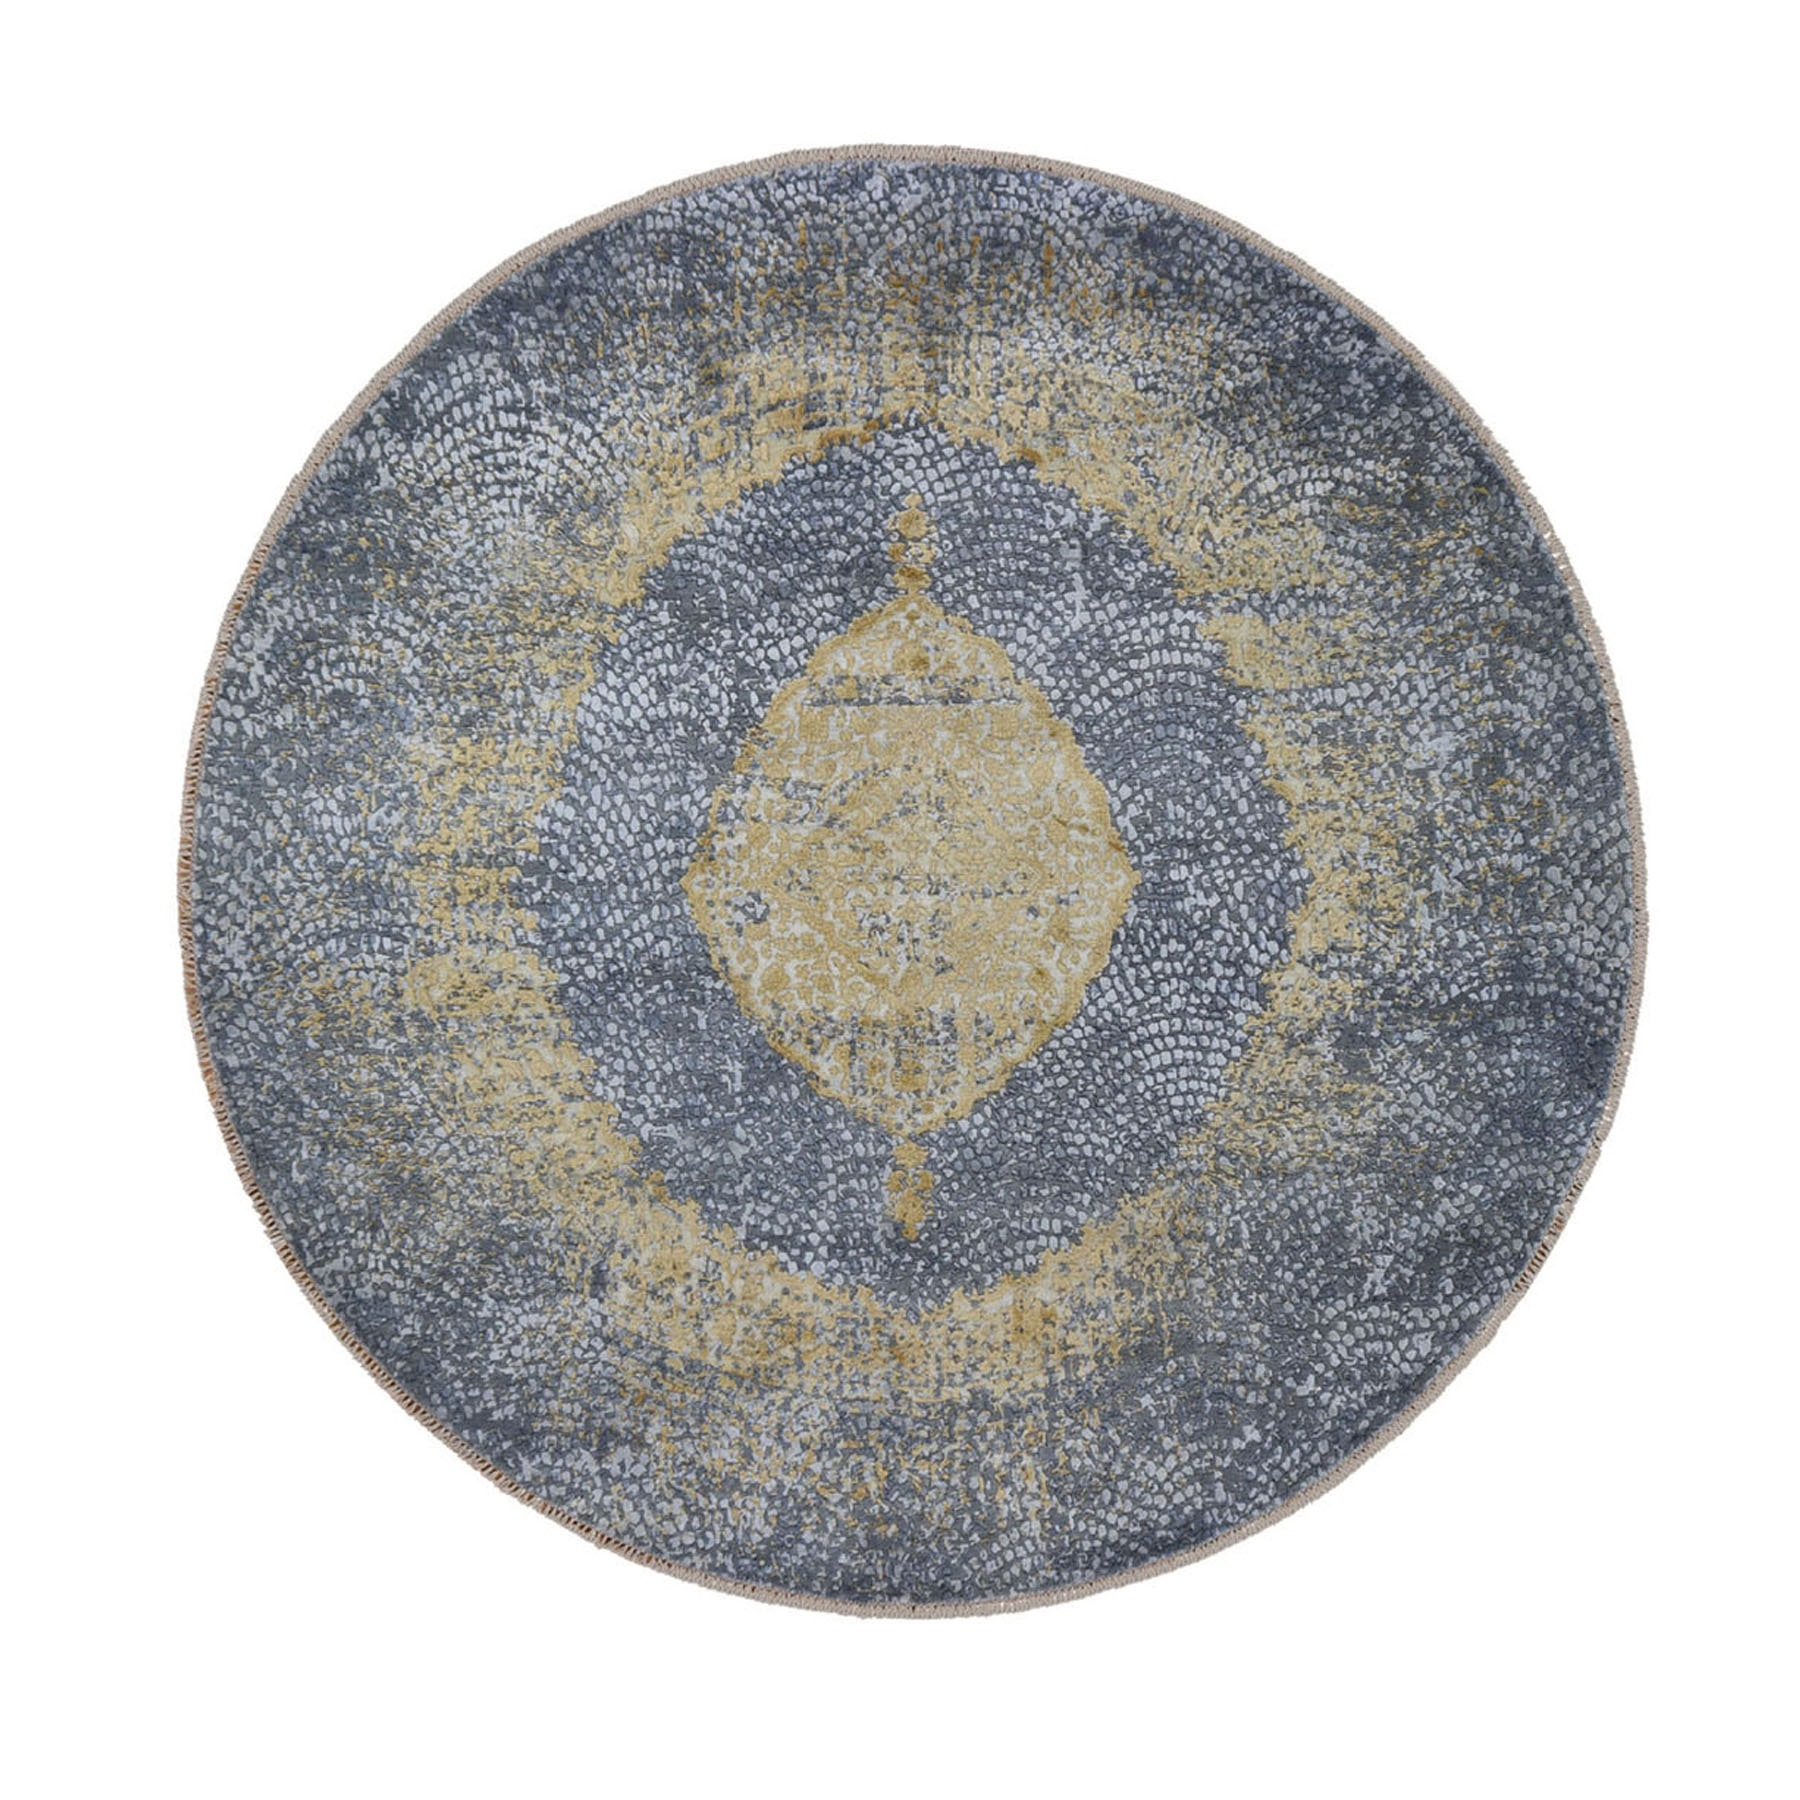 Round Rugs And How To Use This Special Size And Circular Carpet